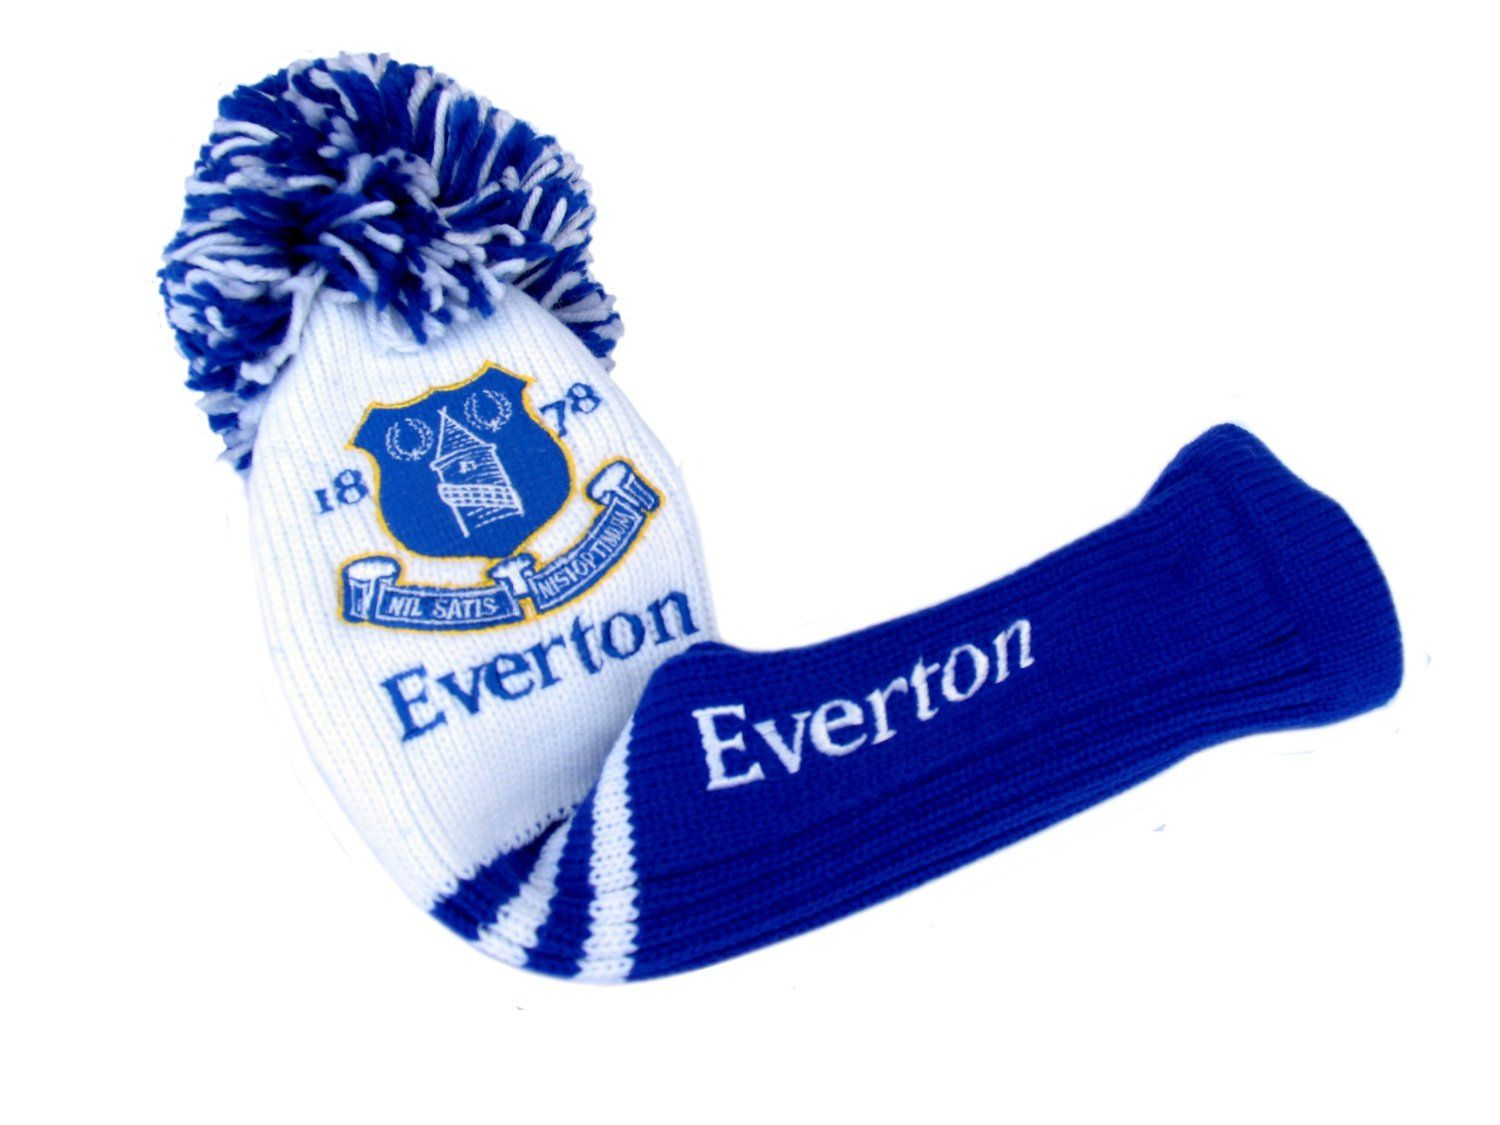 Official Everton FC Pom Pom Golf Driver Headcover